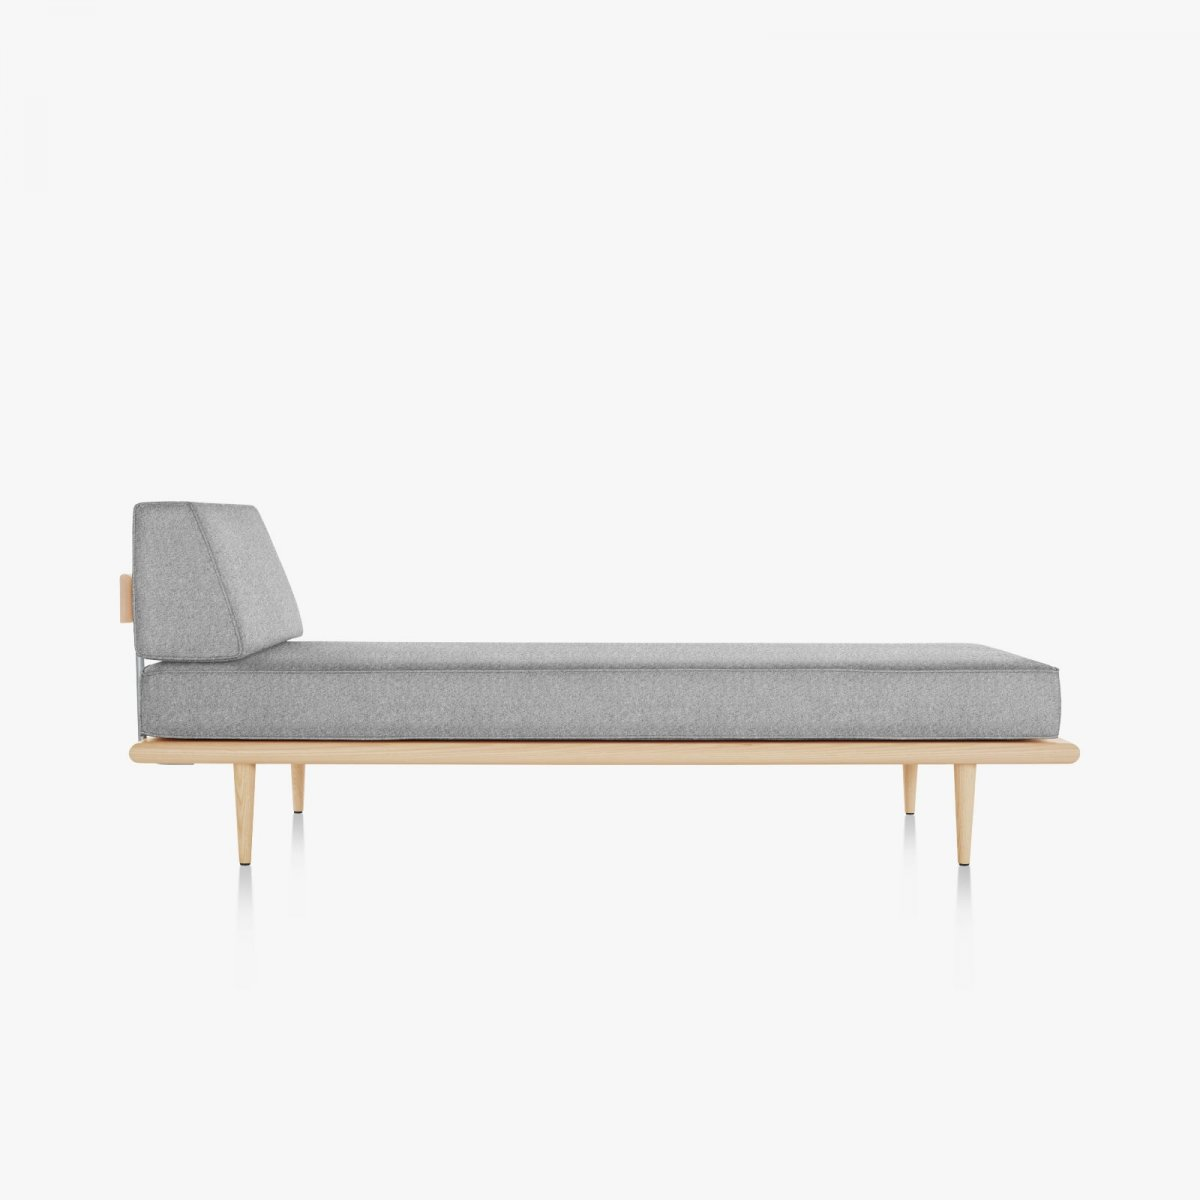 Nelson Daybed with Side Bolster and Wood Taper Legs, white ash, side view.